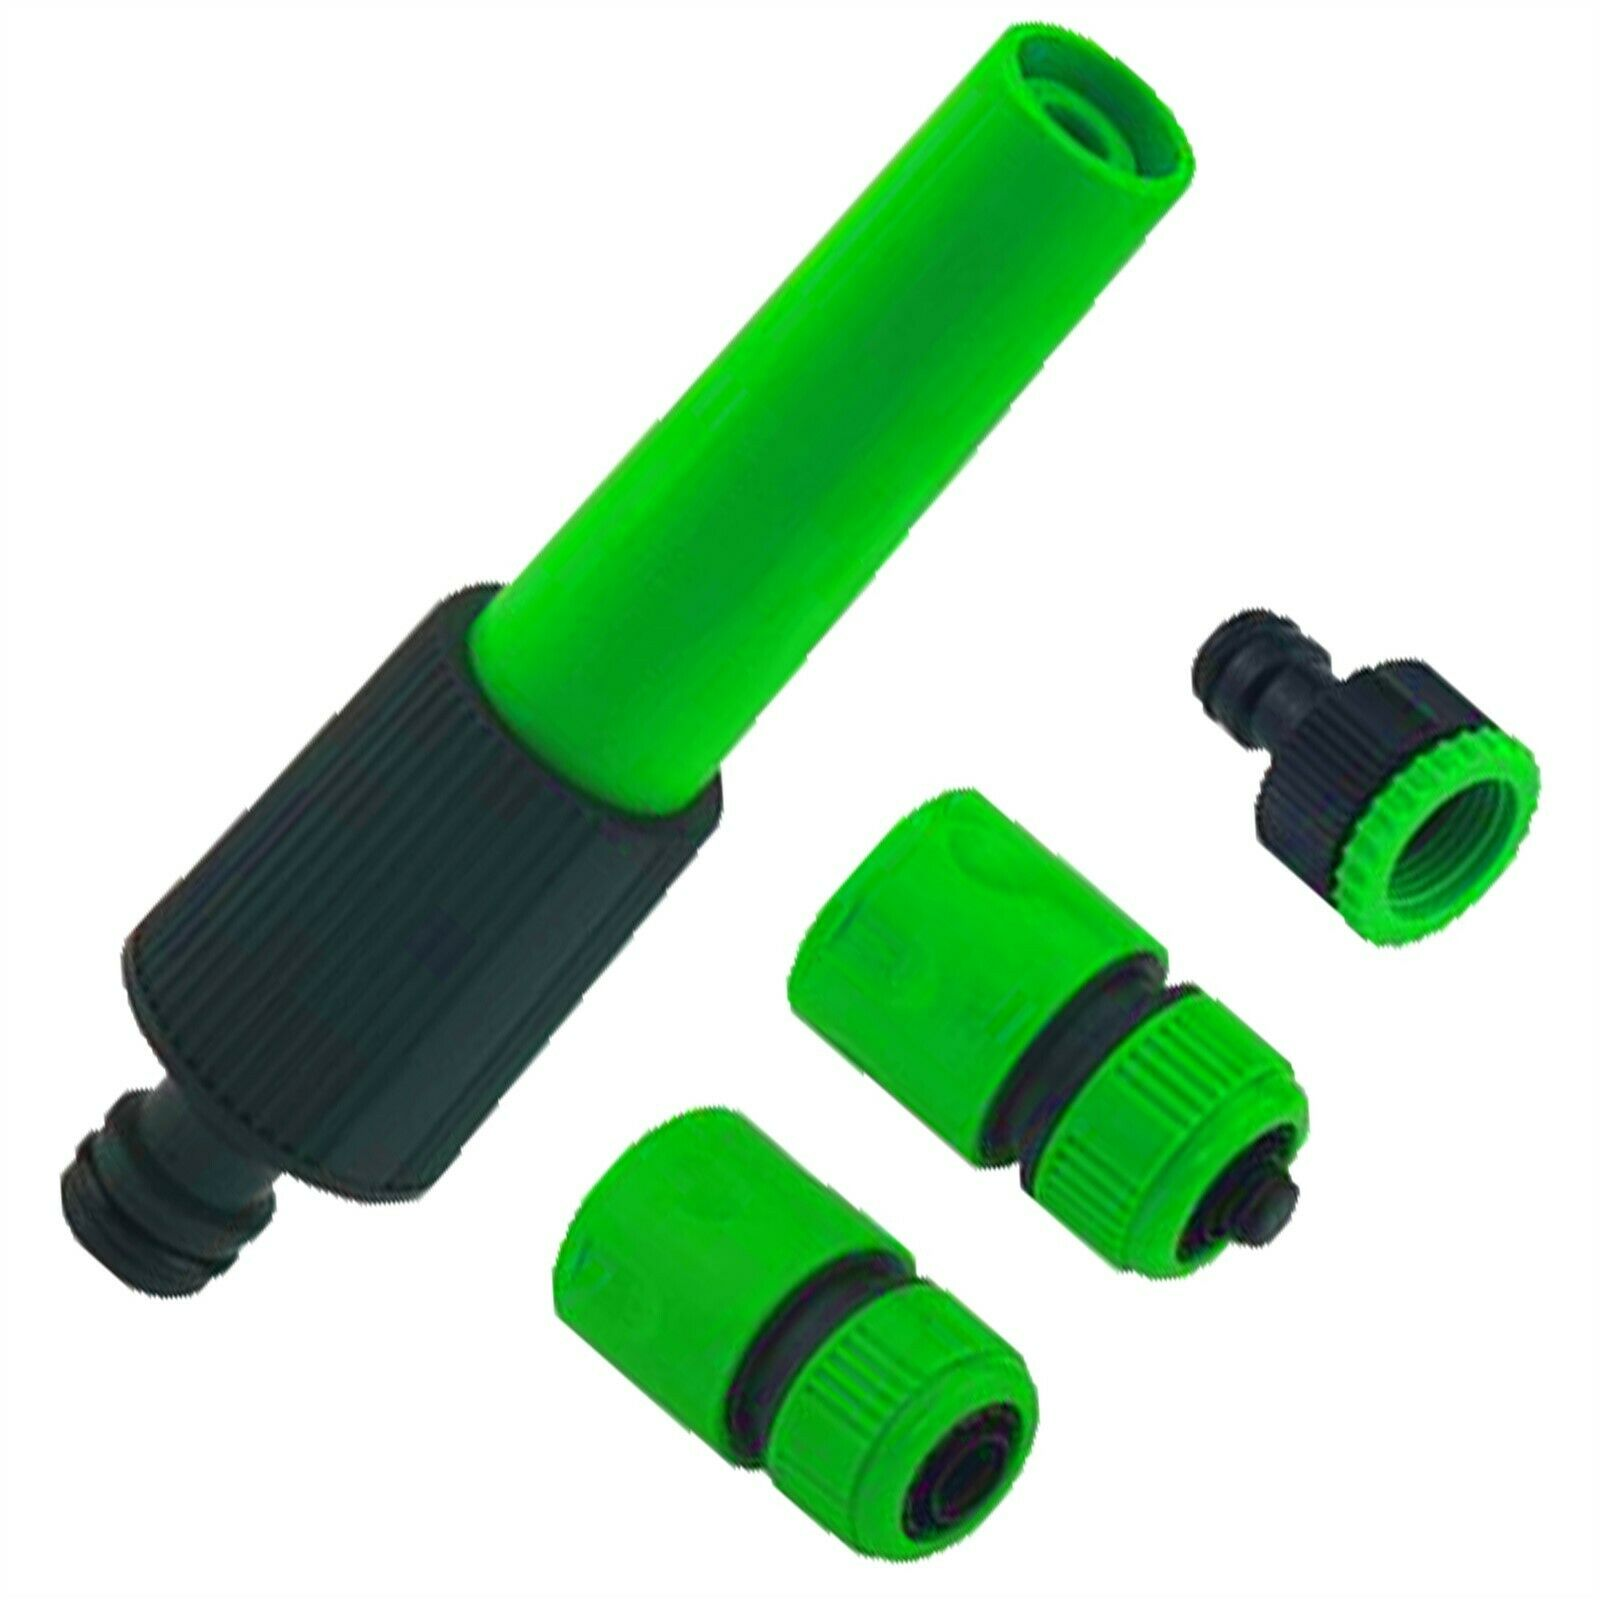 4 X Hose Pipe Fittings Nozzle Extra Connector Attachments Garden Water Outdoor